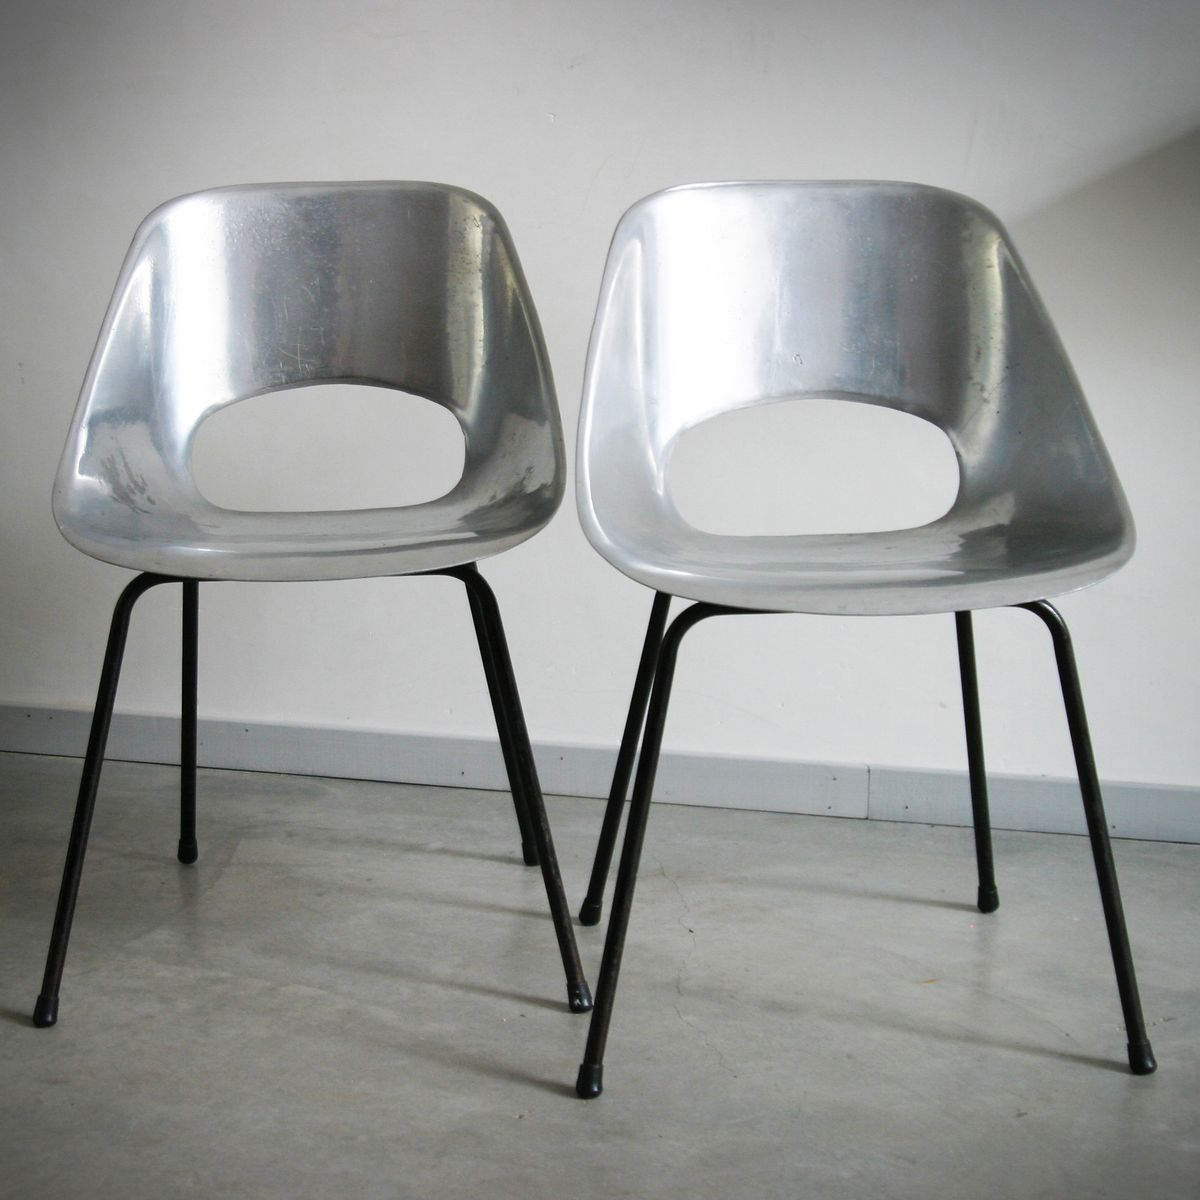 Tulip chairs by pierre guariche set of 2 for sale at pamono - Tulip chairs for sale ...